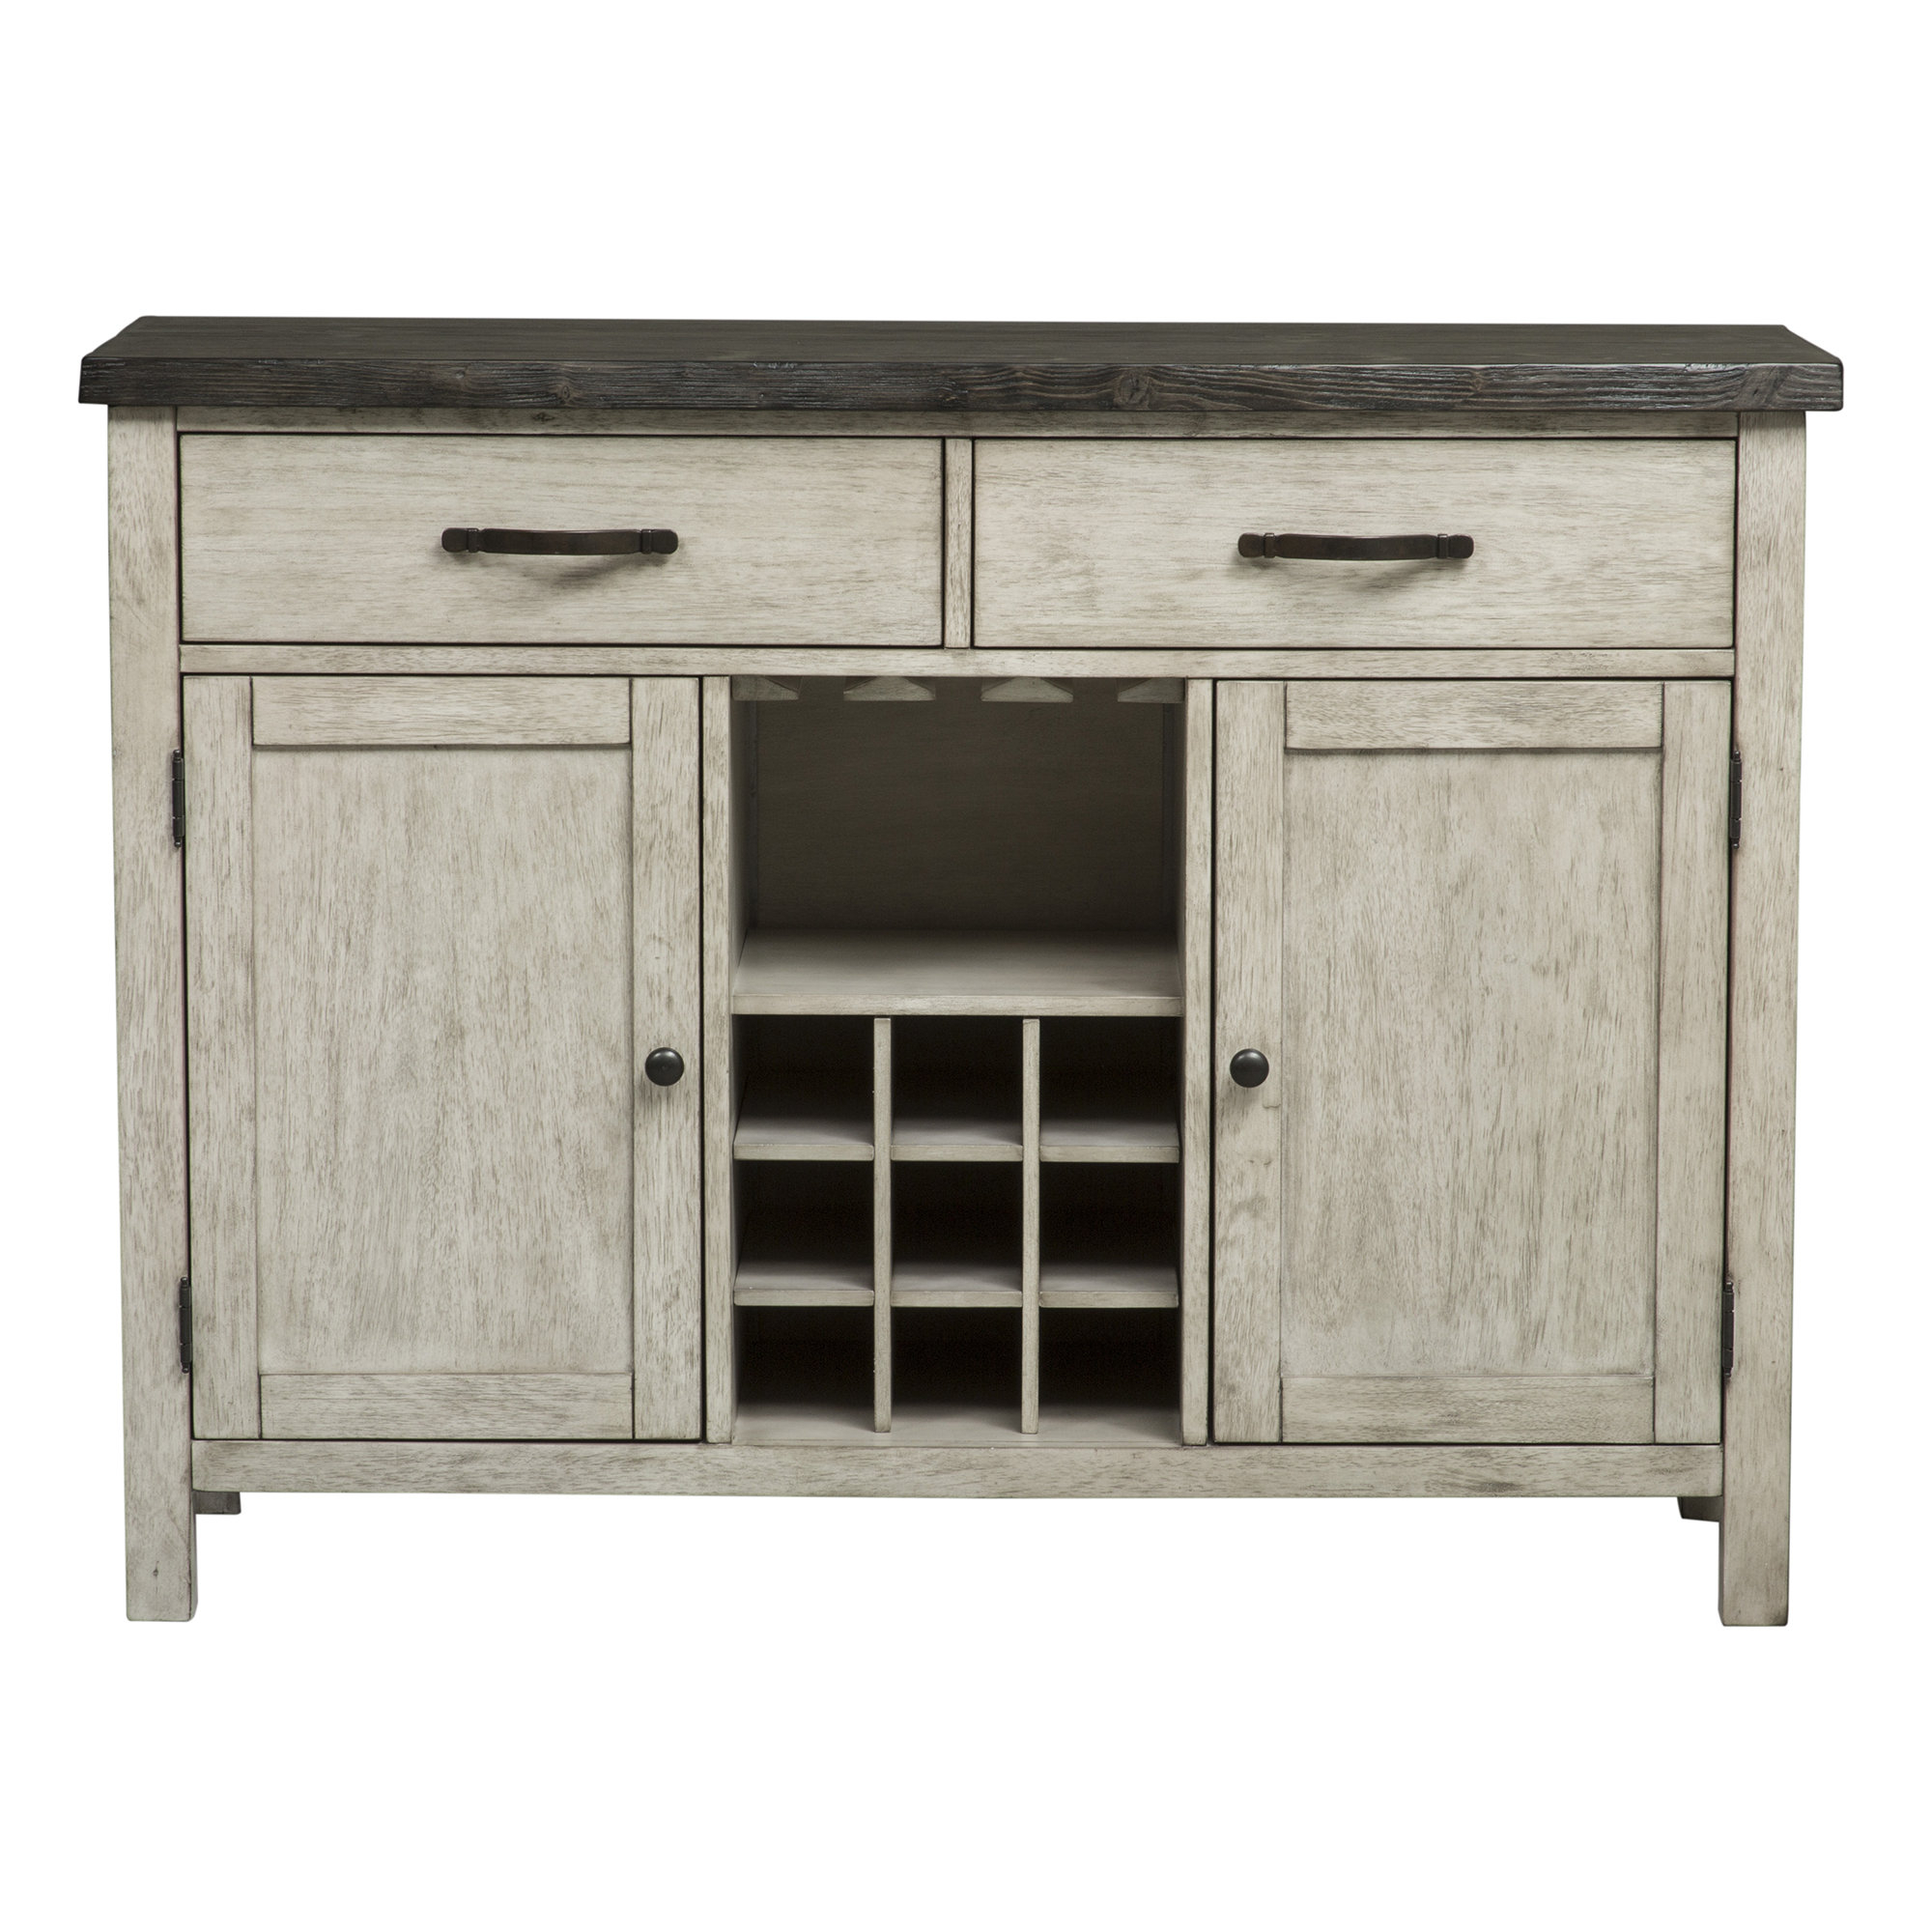 Gray Wood Sideboards & Buffets | Joss & Main For Cazenovia Charnley Sideboards (View 13 of 20)